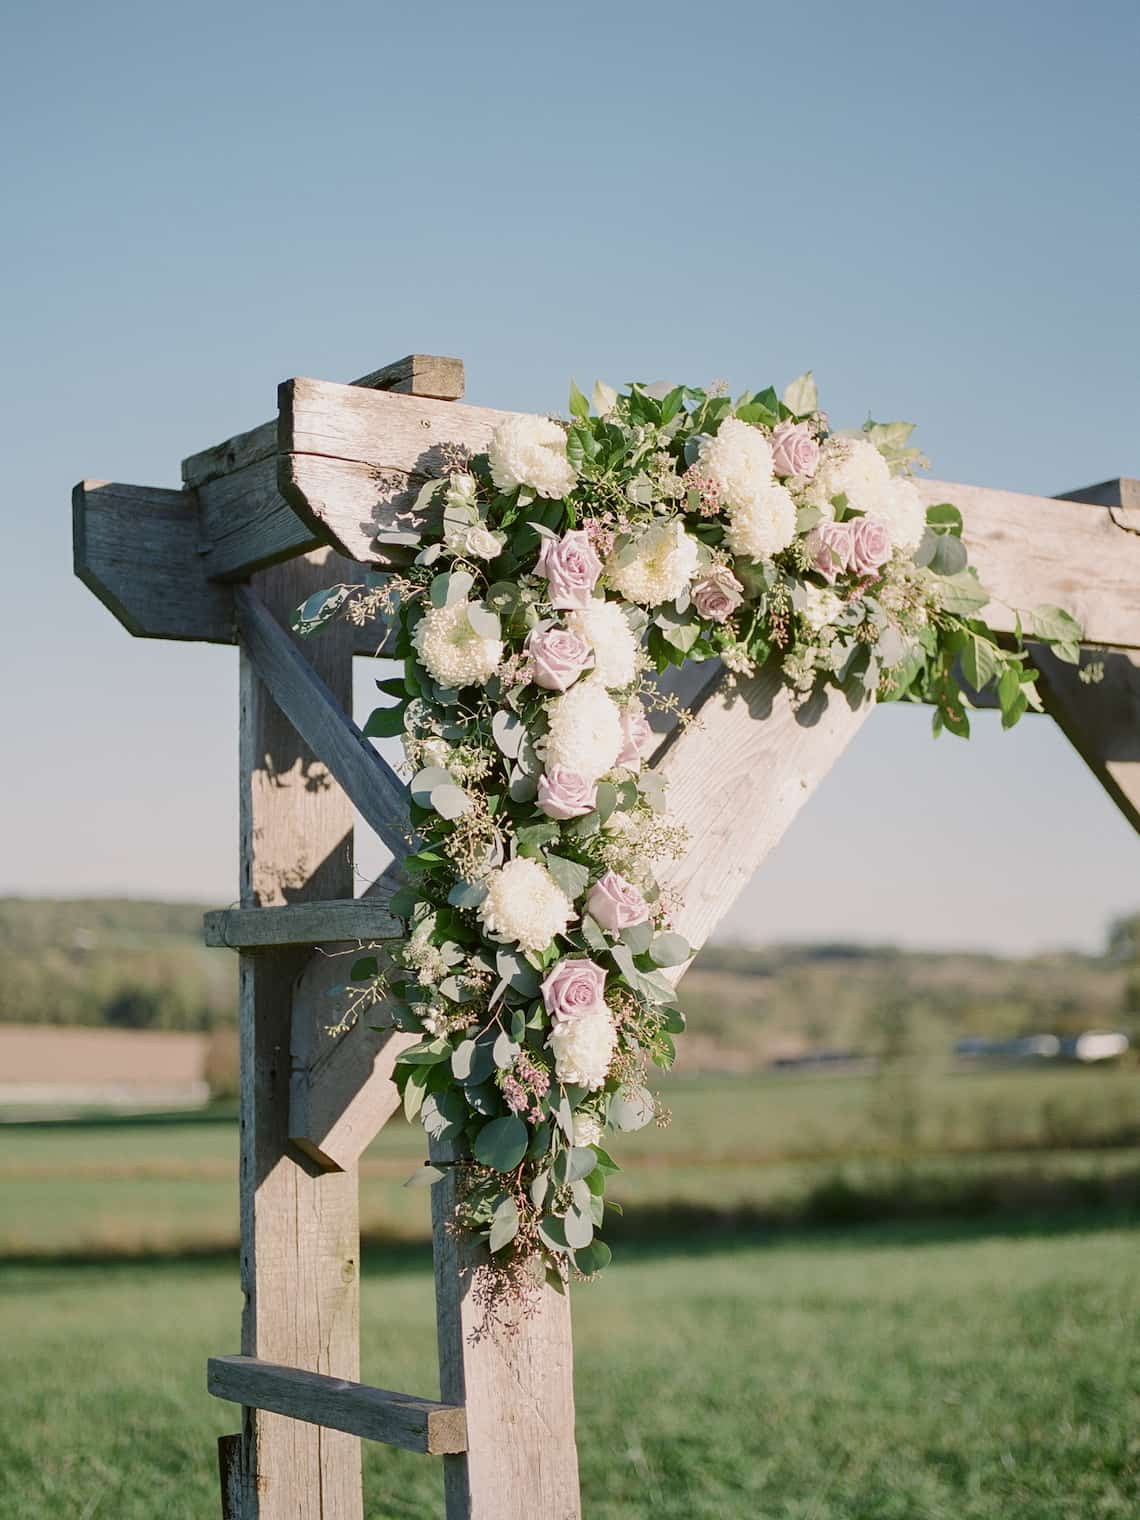 Wedding Arbor with Floral and Greenery